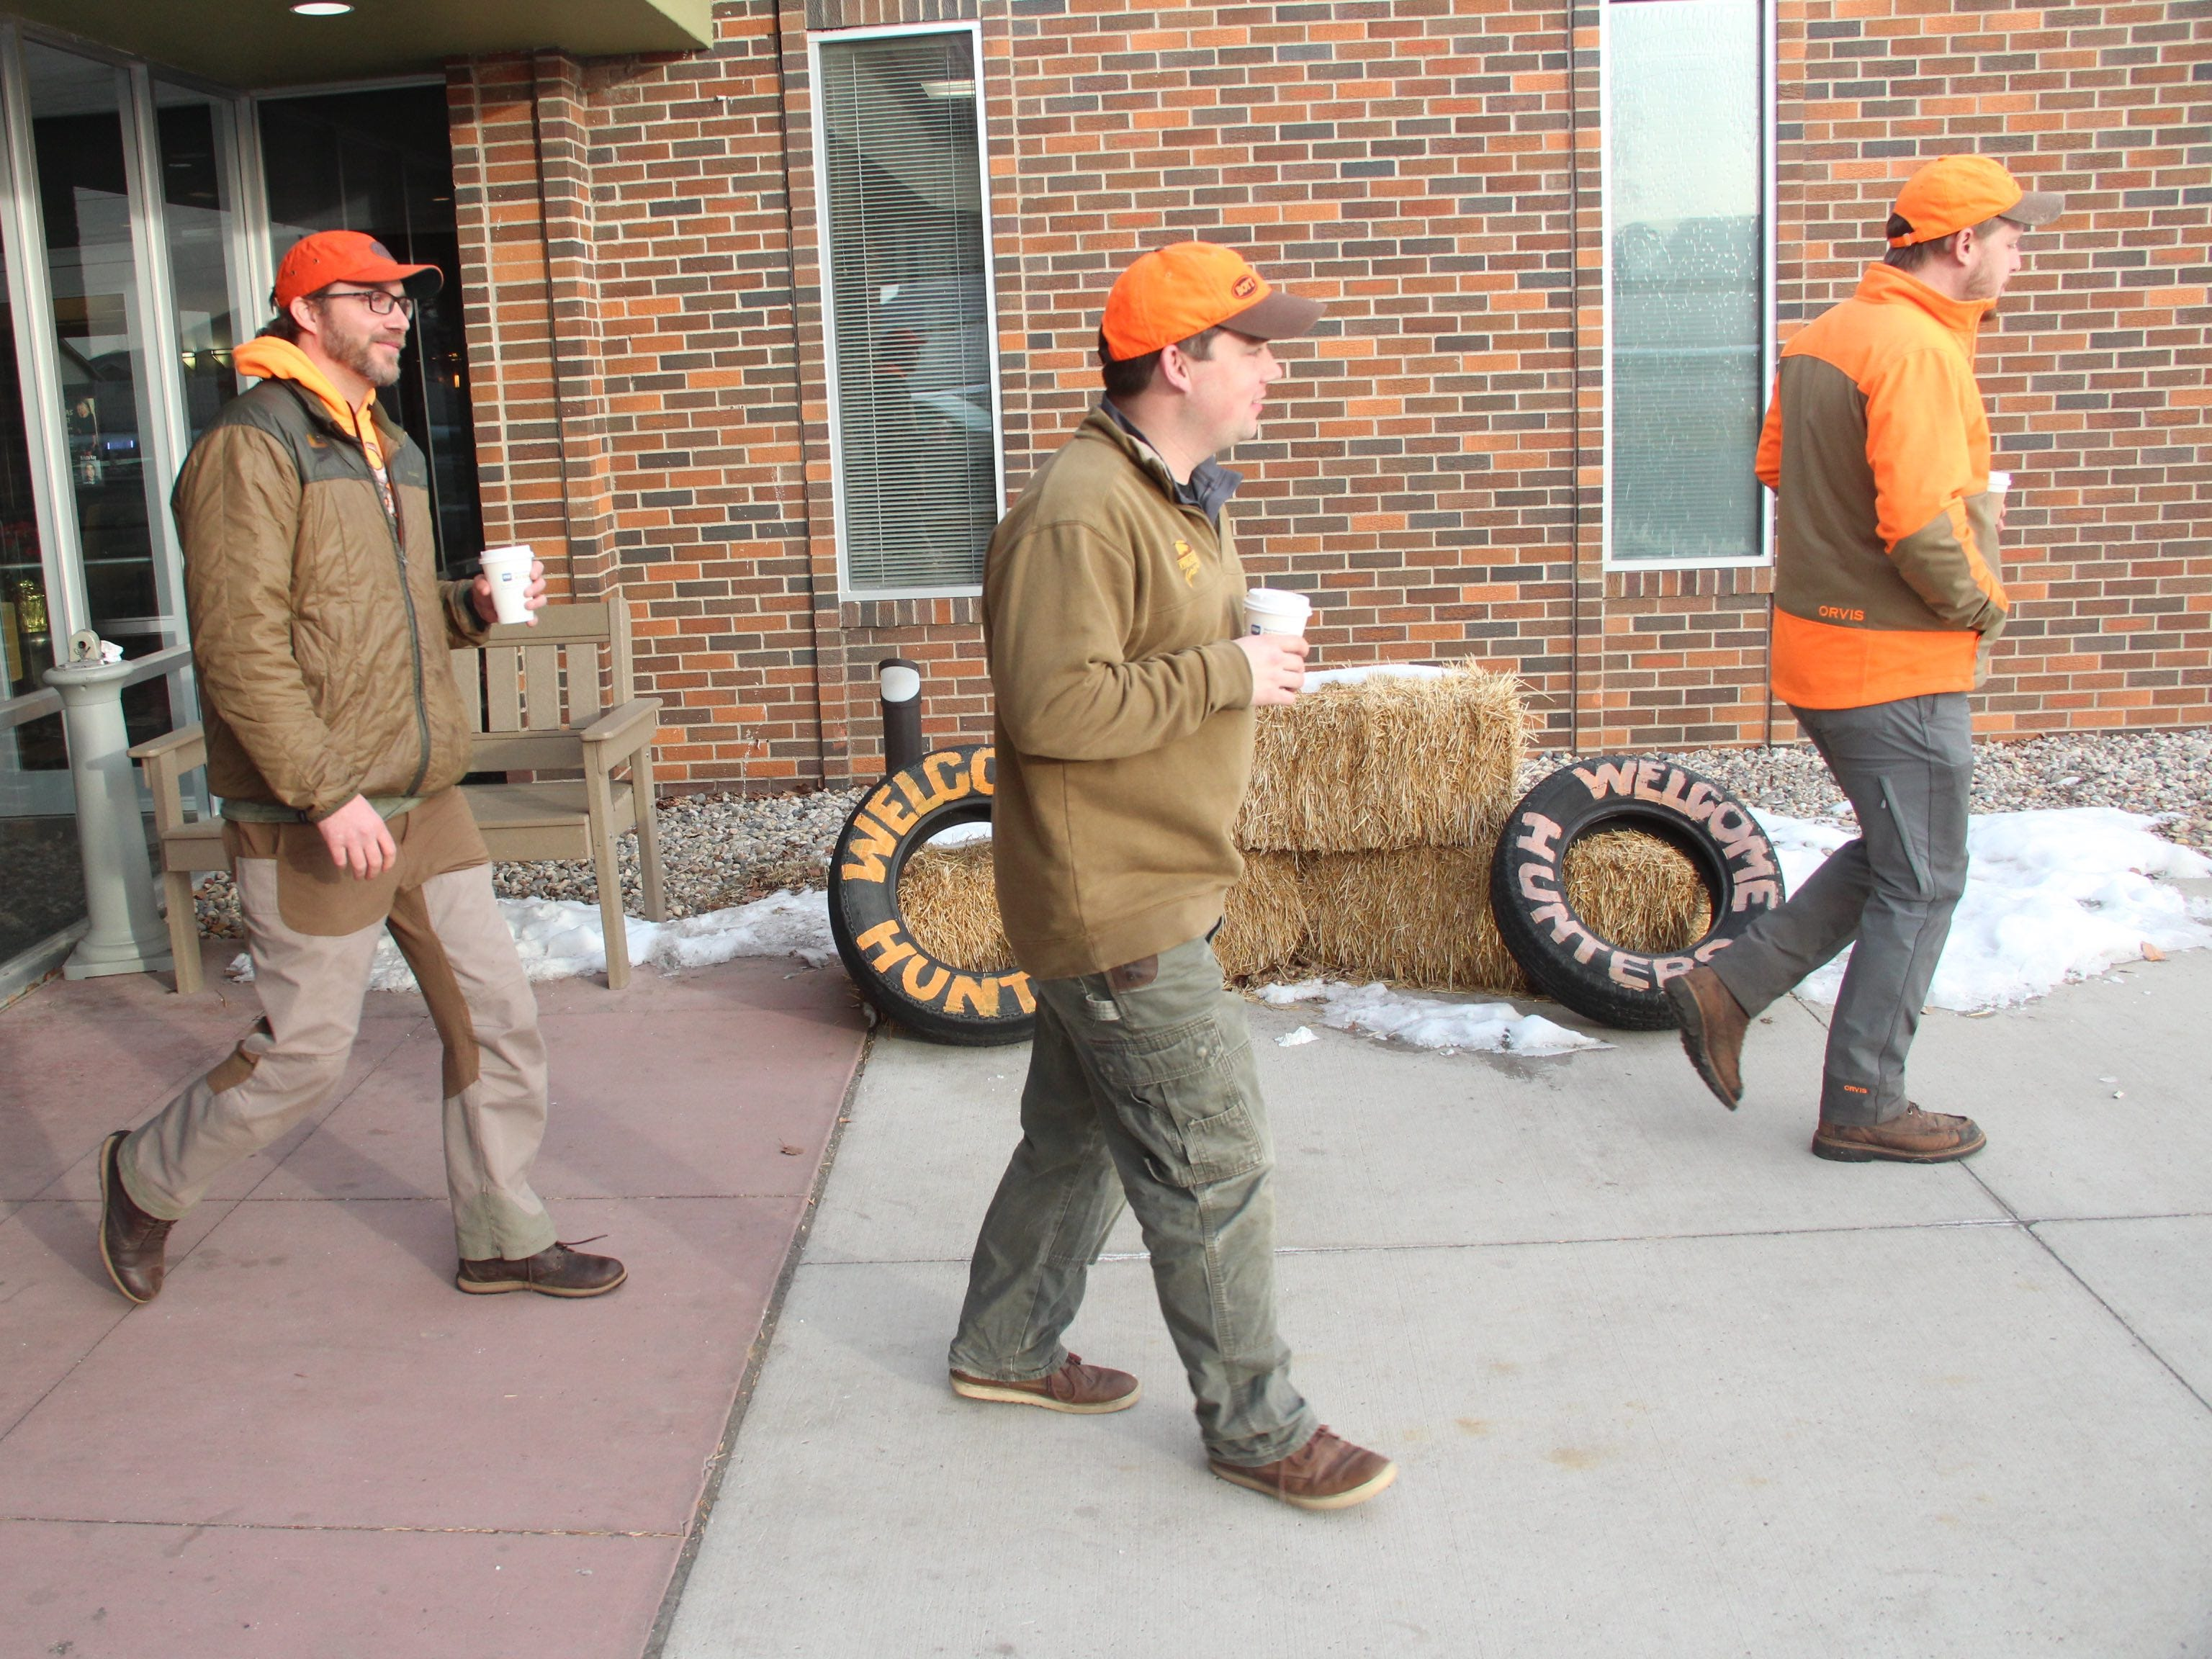 Pheasant hunting is the main tourism draw and a major part of the economy in Aberdeen, South Dakota.